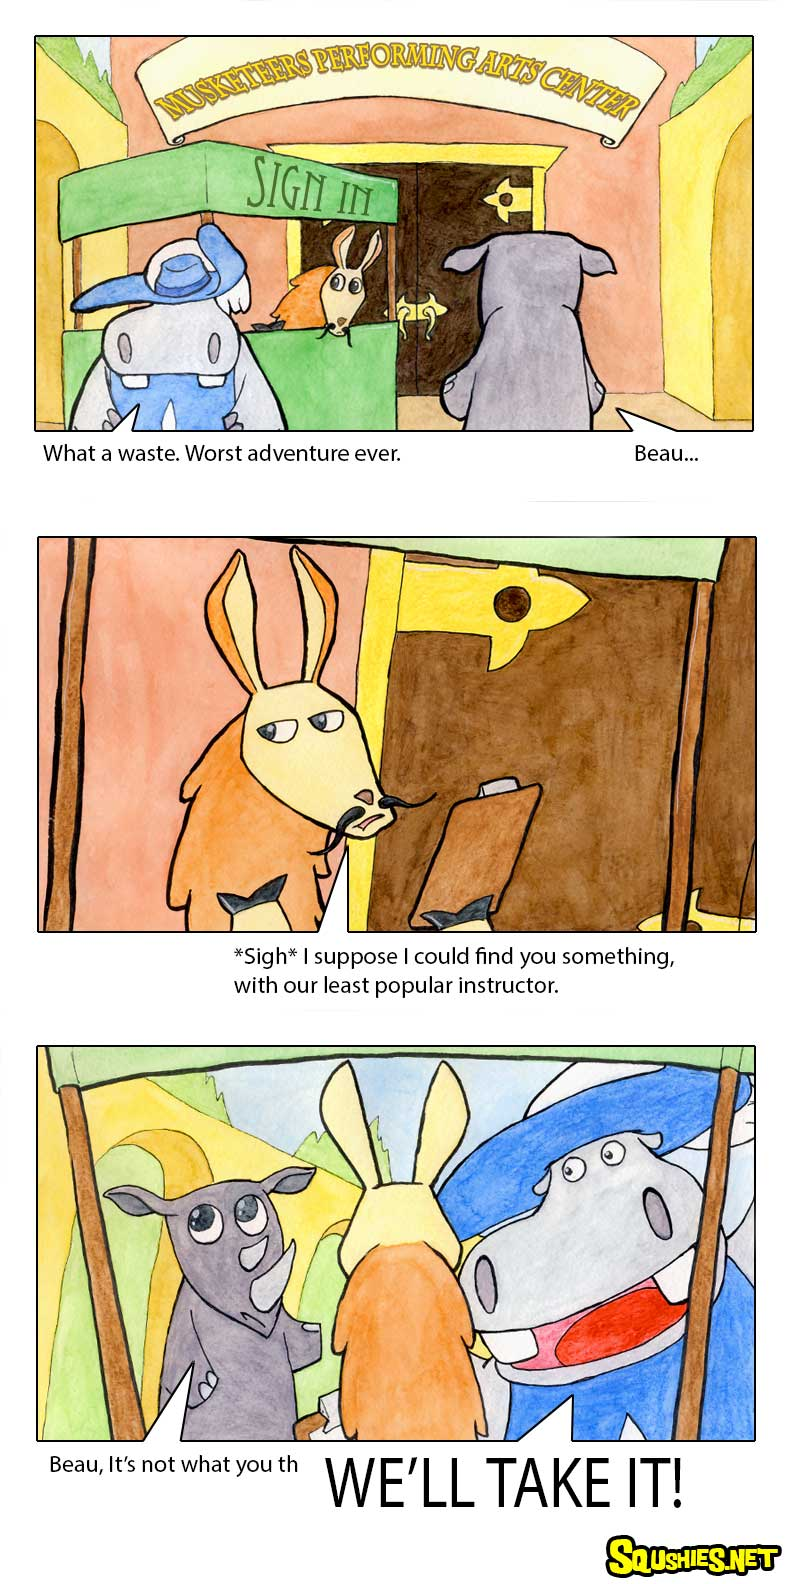 The Squshies web comic! Read about the adventures of Beauregard the Hippo and Reginald the Rhino - Three Musketeers - Week 4